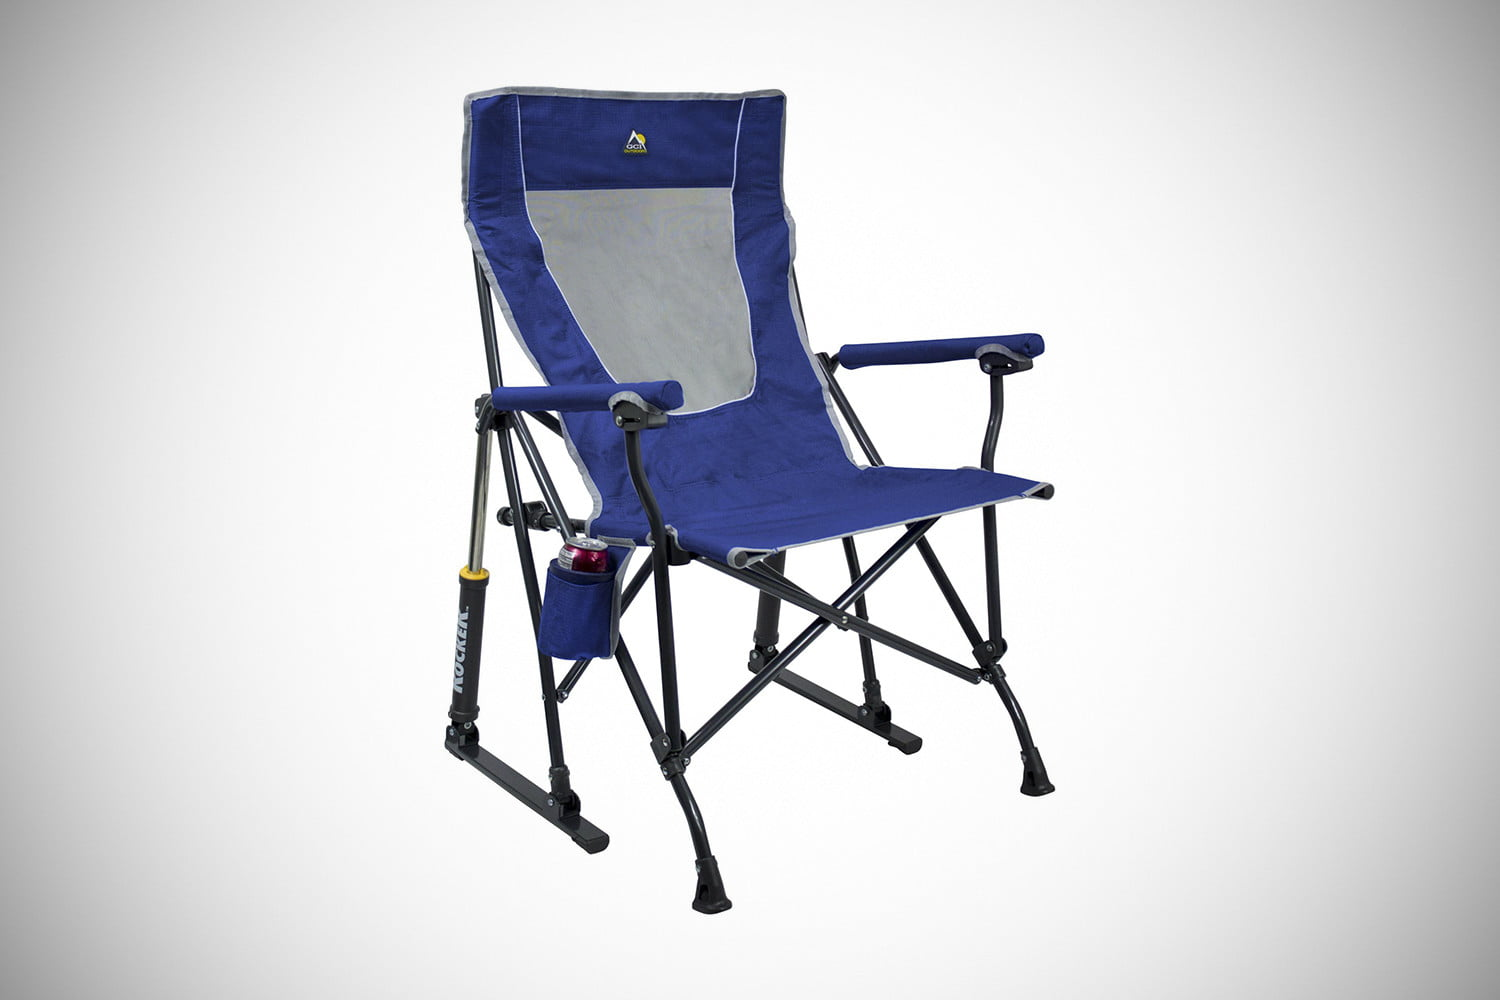 Terrific The Best Camping Chairs For 2019 Digital Trends Pabps2019 Chair Design Images Pabps2019Com